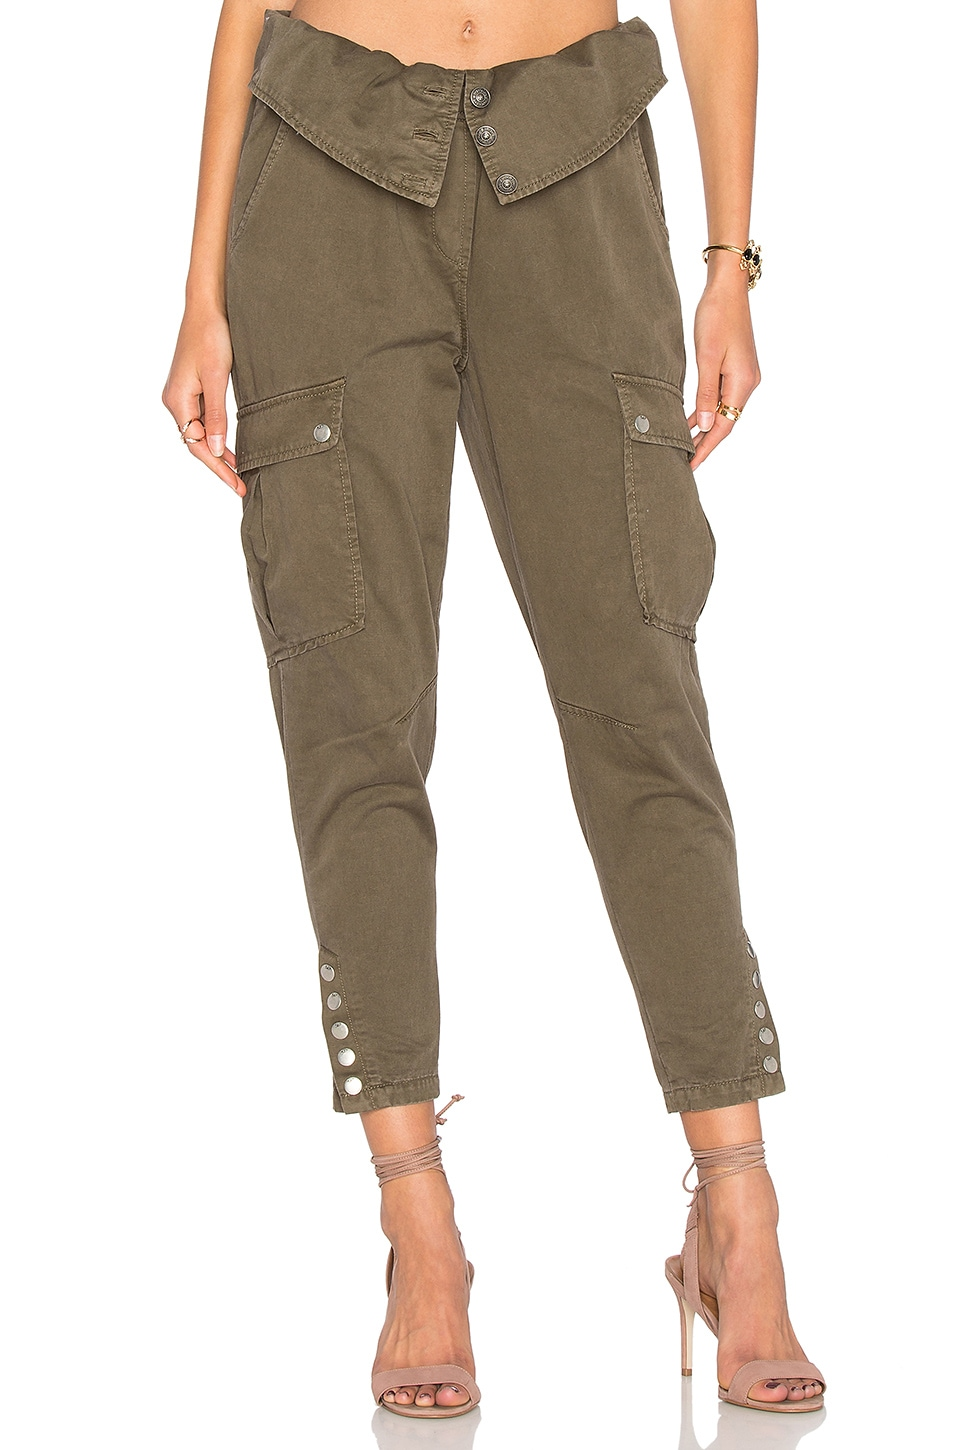 Cinq a Sept Noah Cargo Pant in Olive